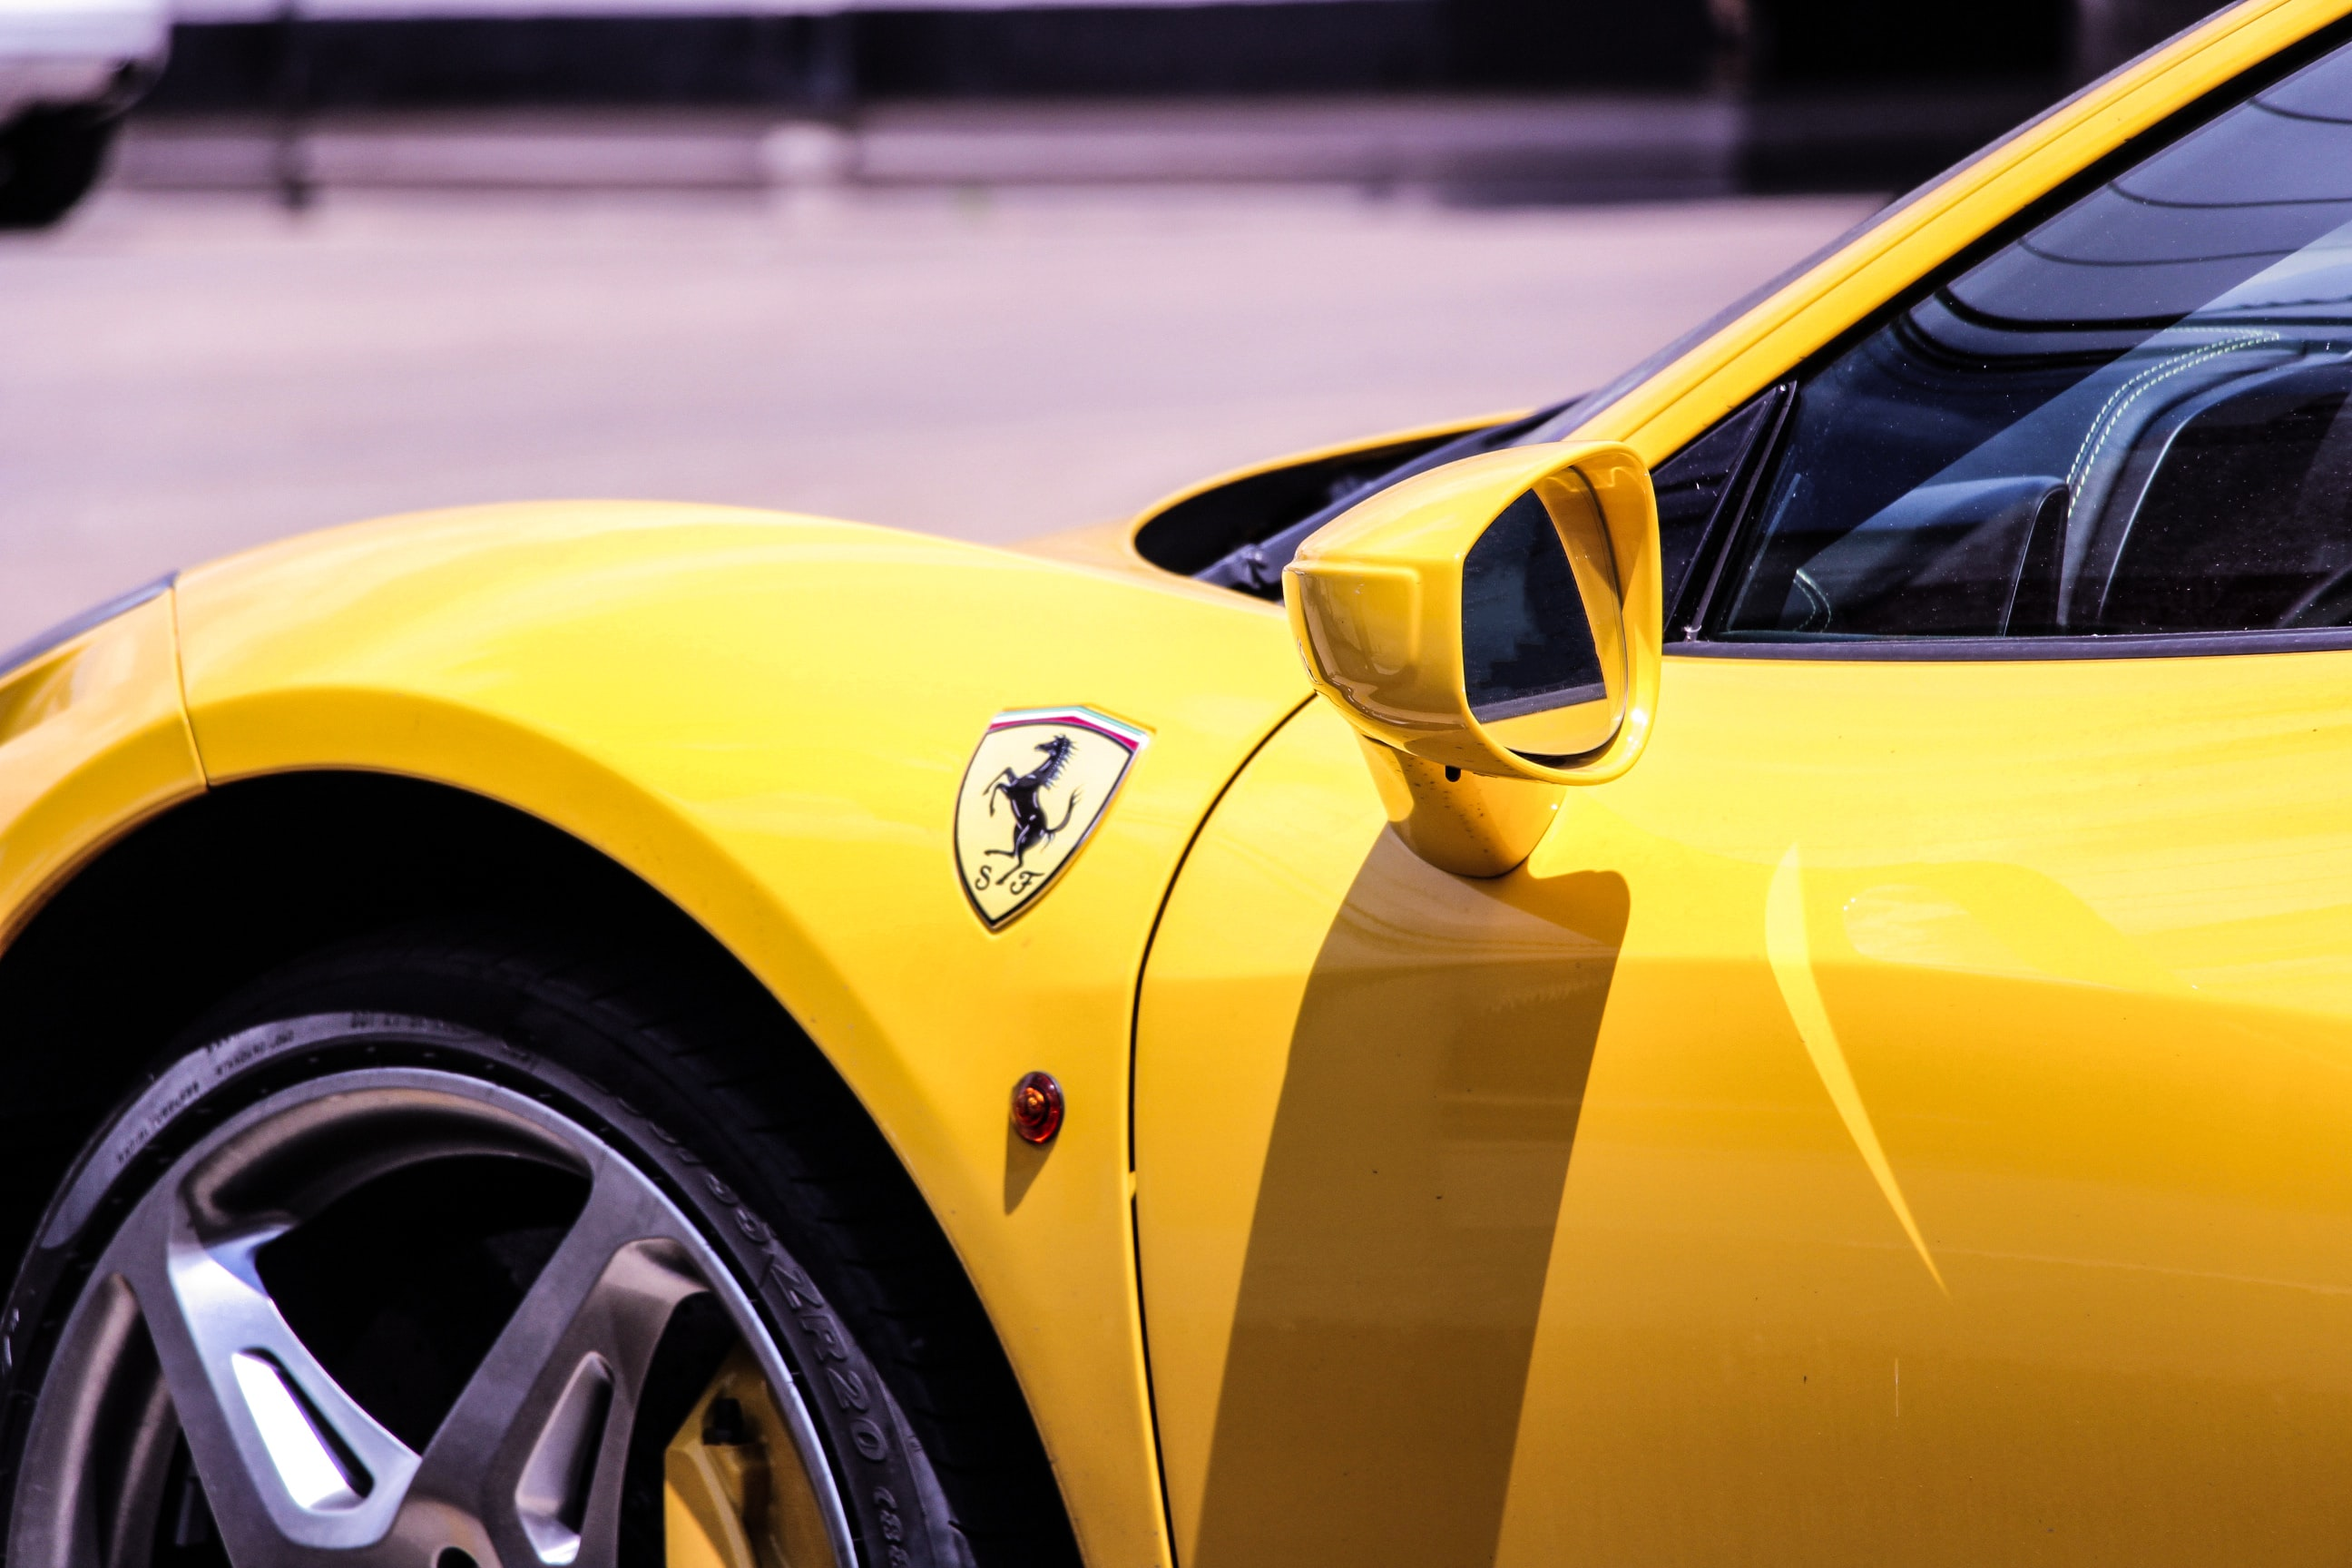 yellow Ferrari car